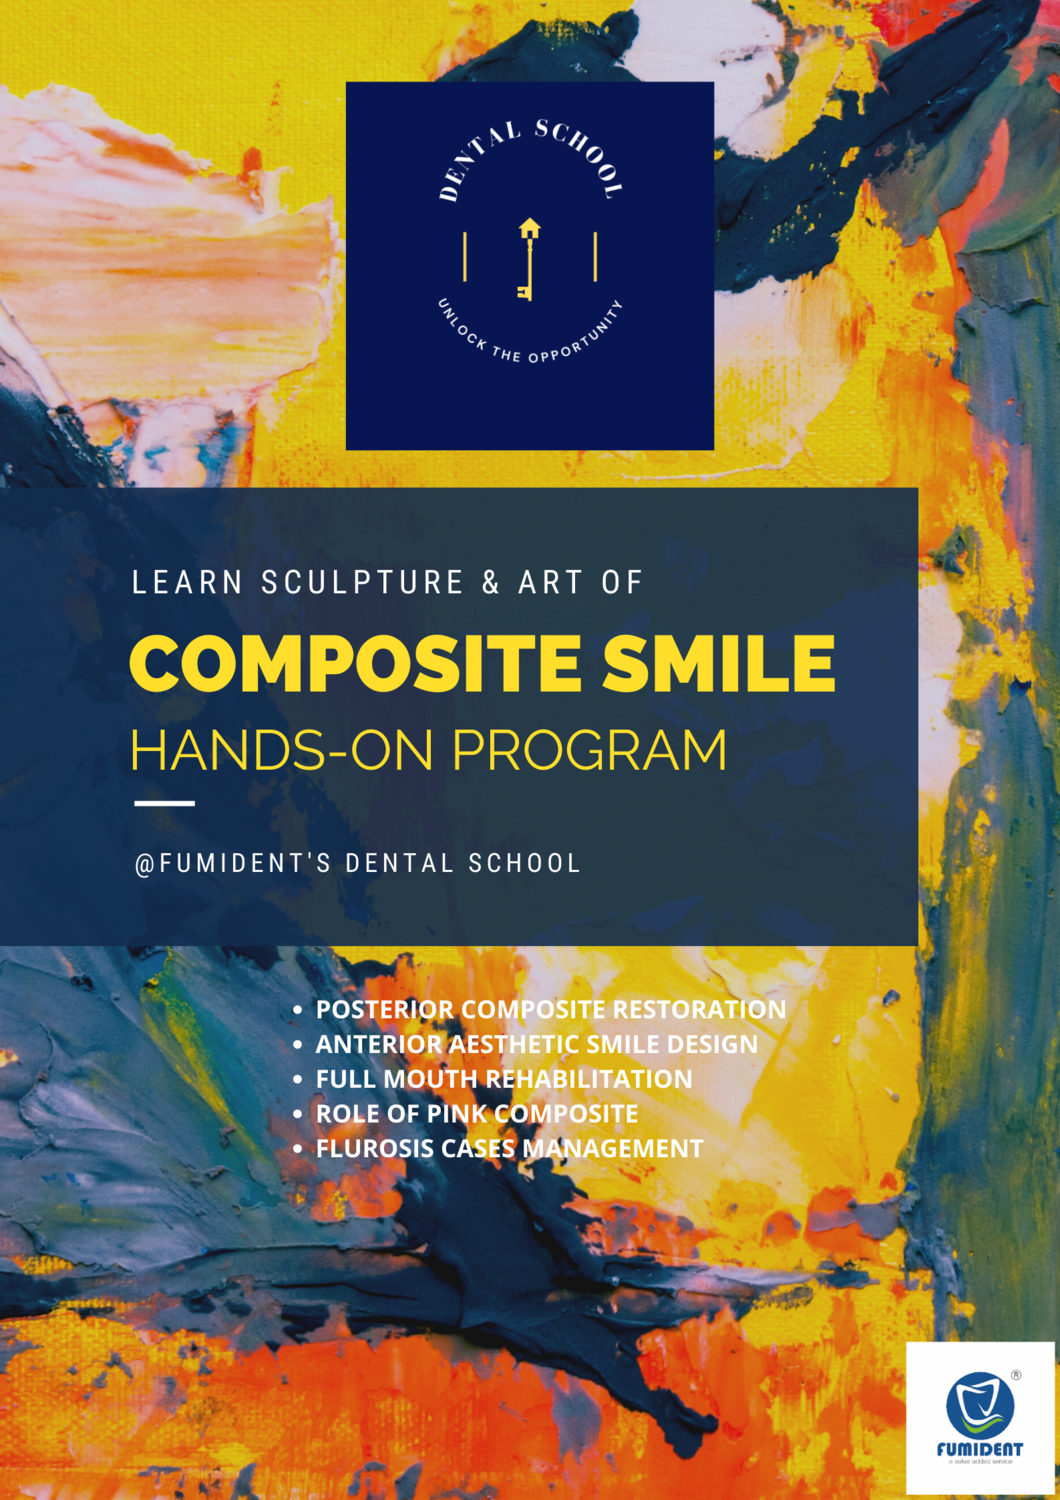 POSTERIOR COMPOSITE RESTORATION HANDS-ON COURSE